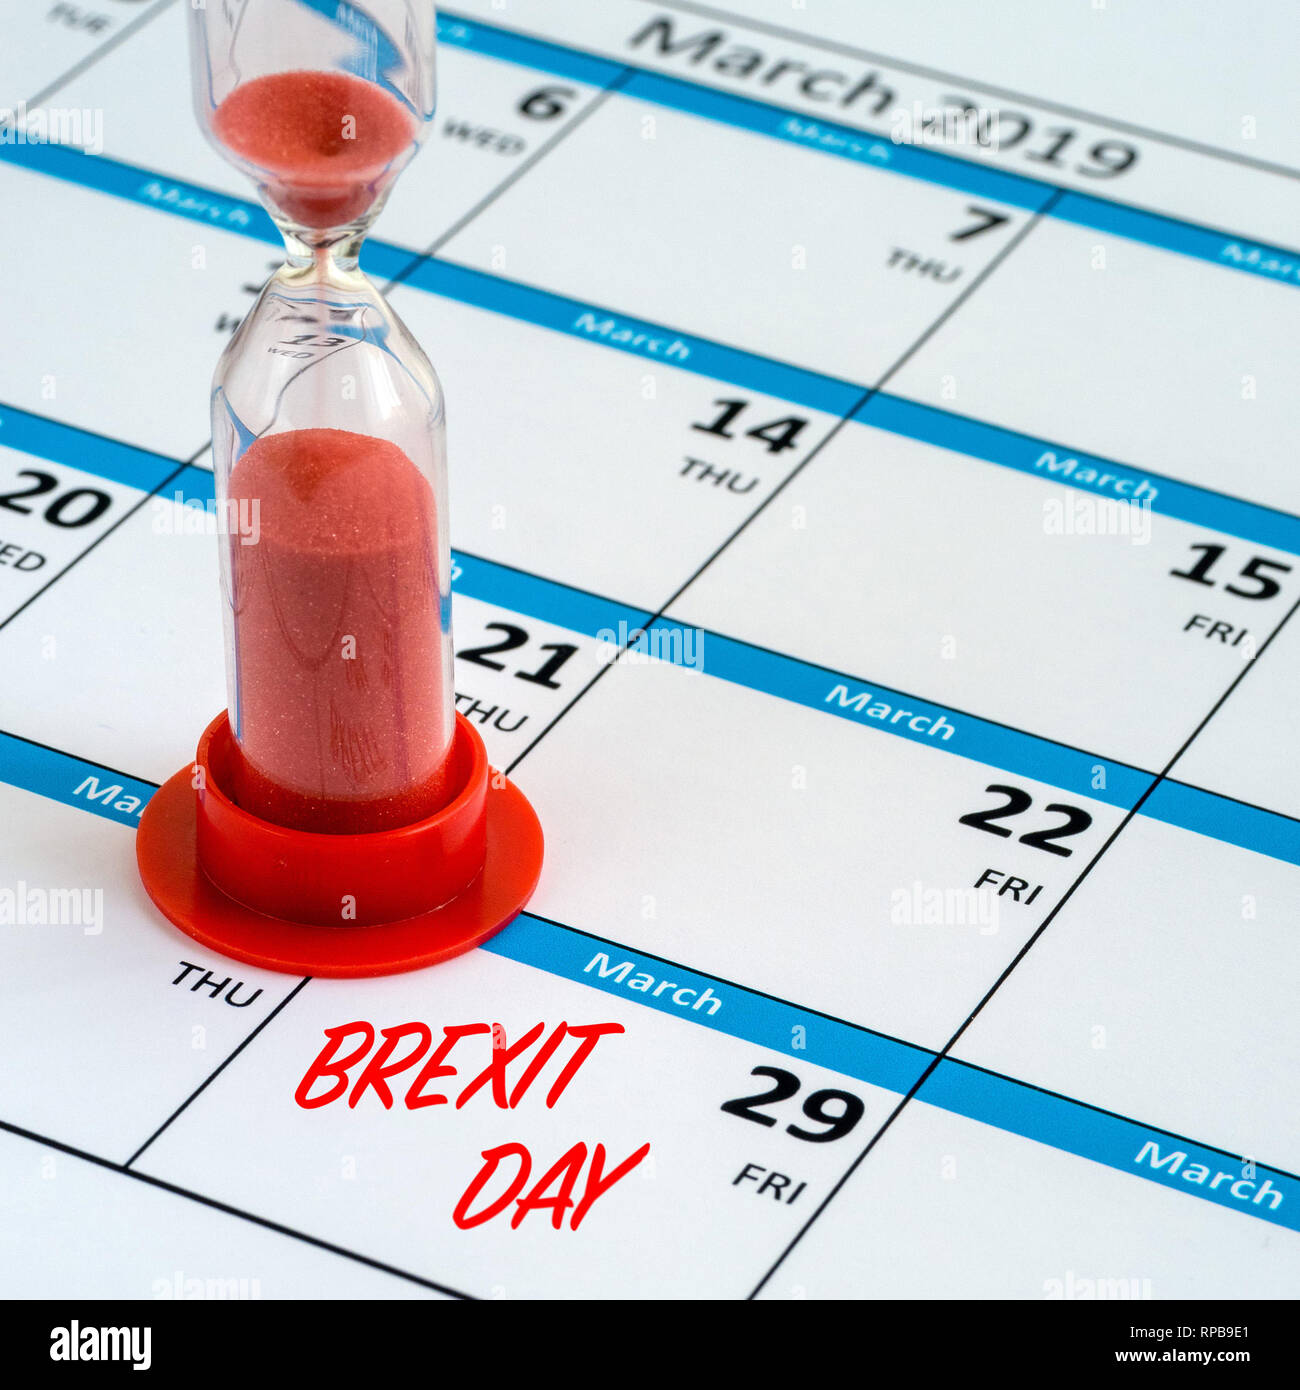 Concept image of time running out, or running down the clock to Brexit day deadline on 29th March 2019 shown by a calendar and hourglass timer. - Stock Image